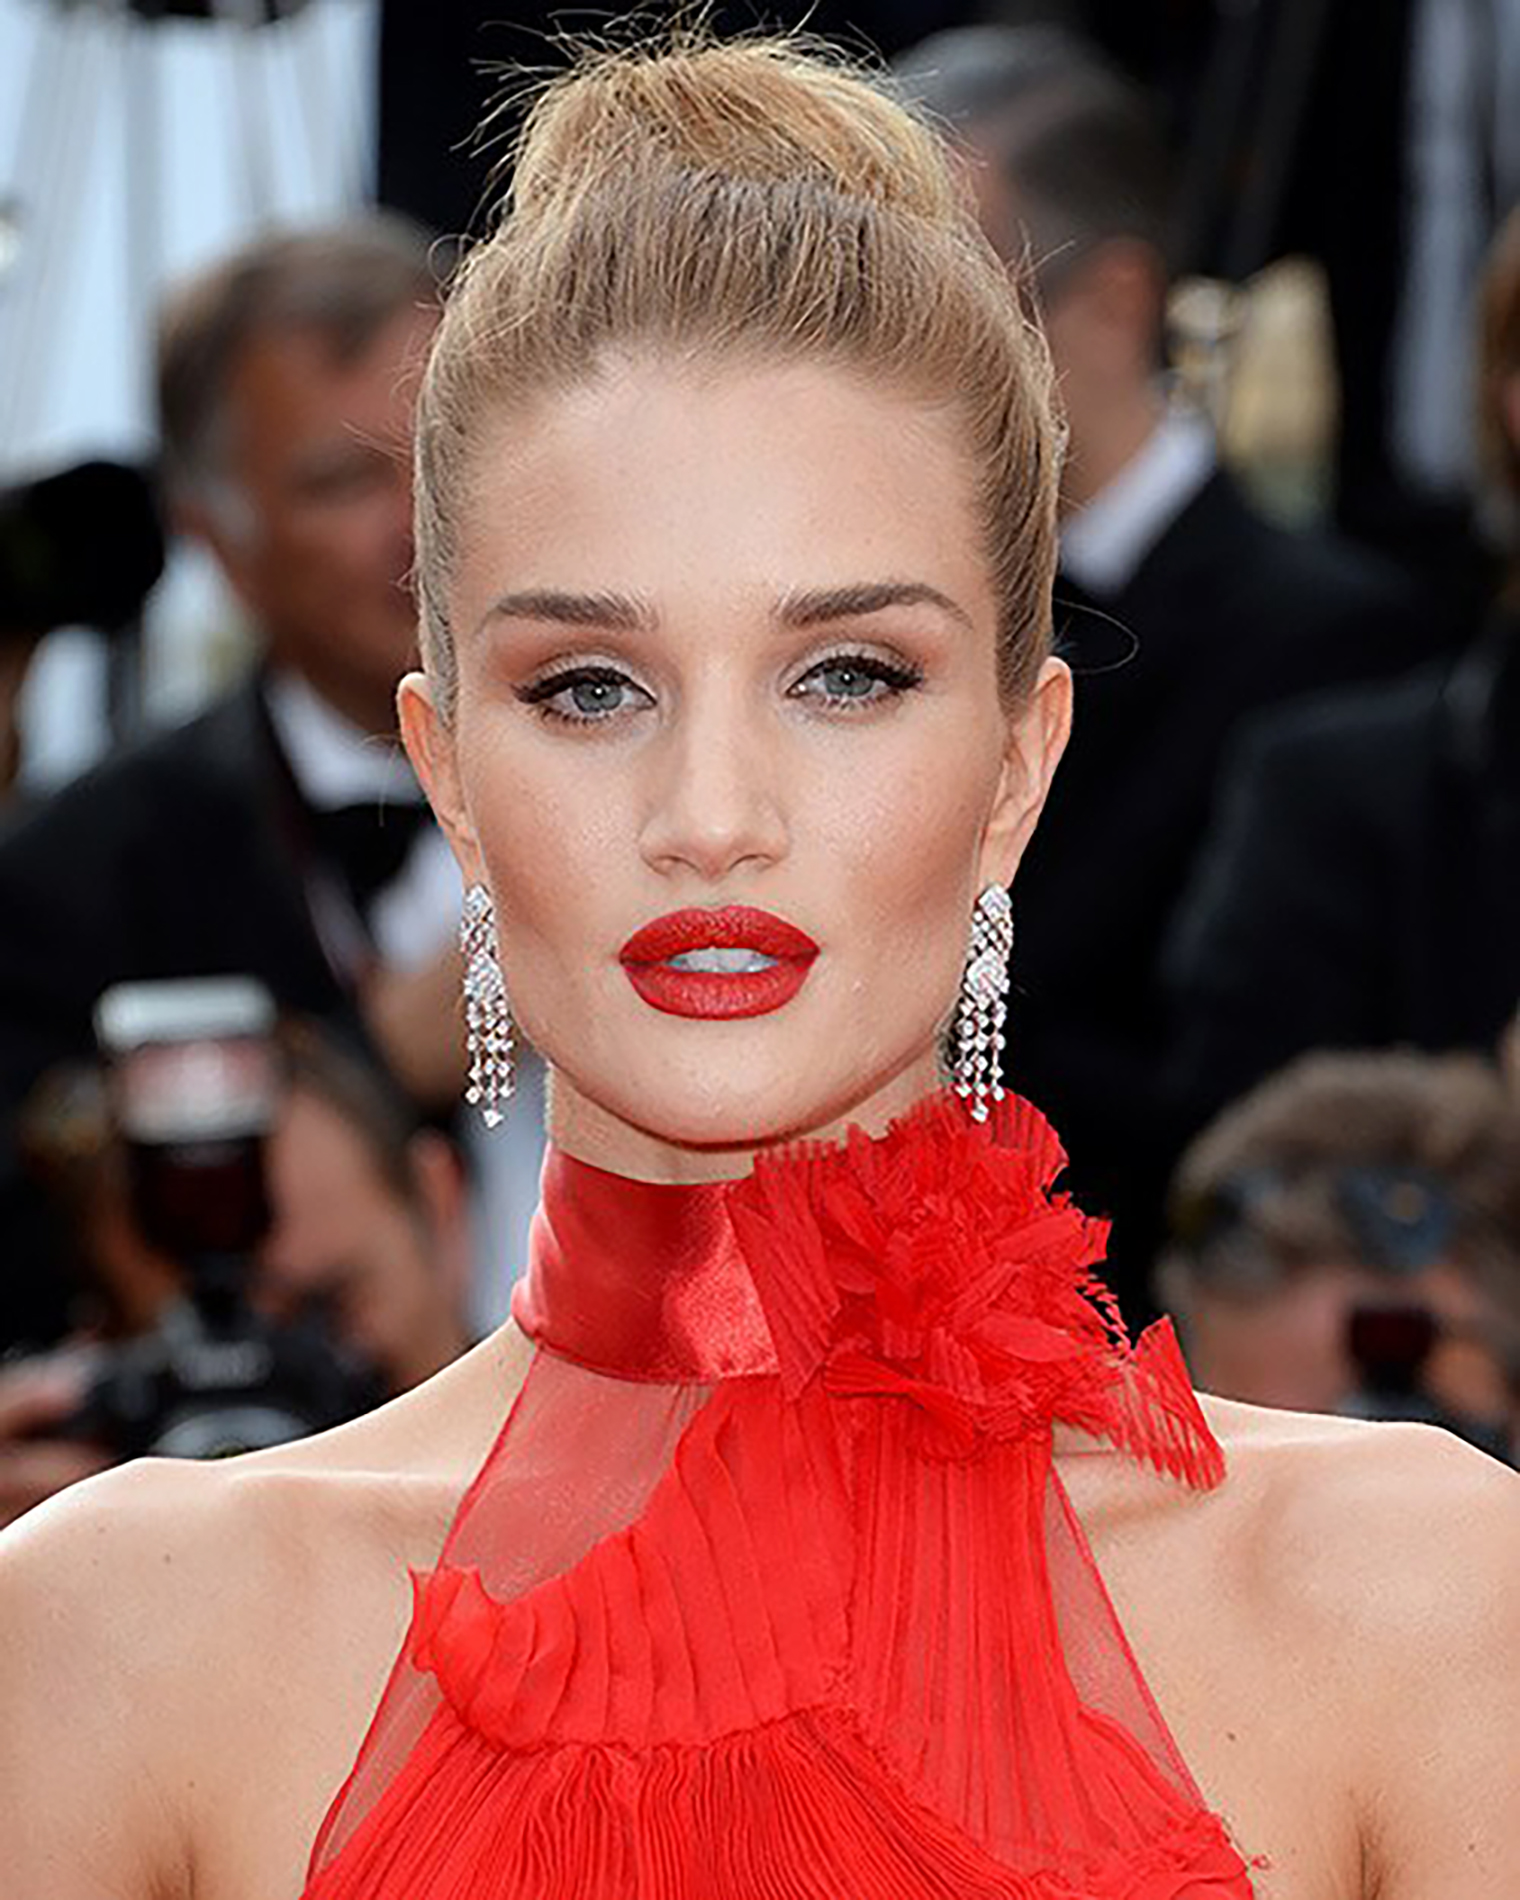 beauty trends blogs daily beauty reporter 2016 05 20 rosie huntington whiteley